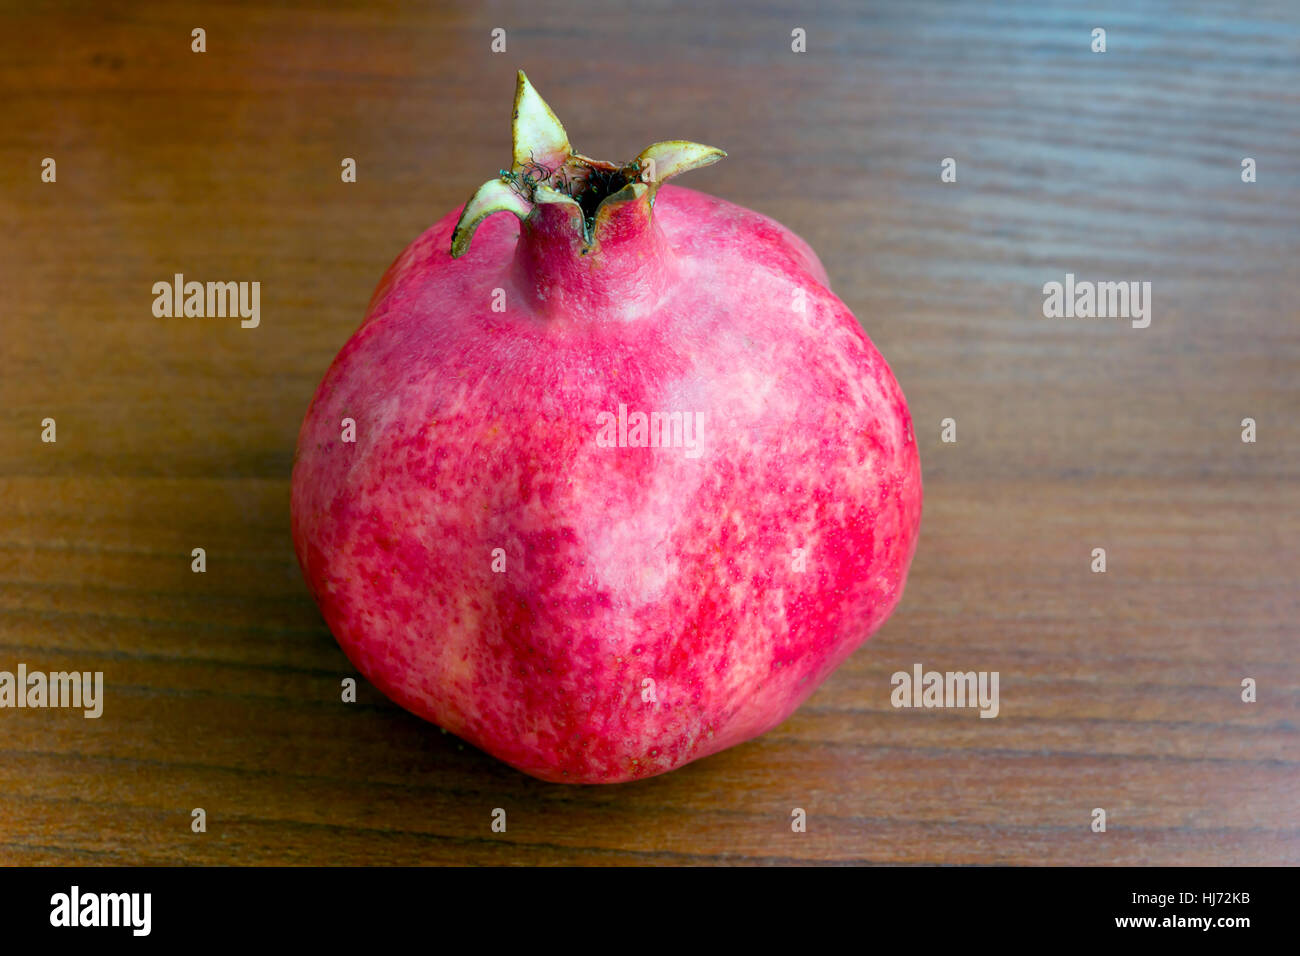 Photo of one pomegranate on brown wooden background - Stock Image